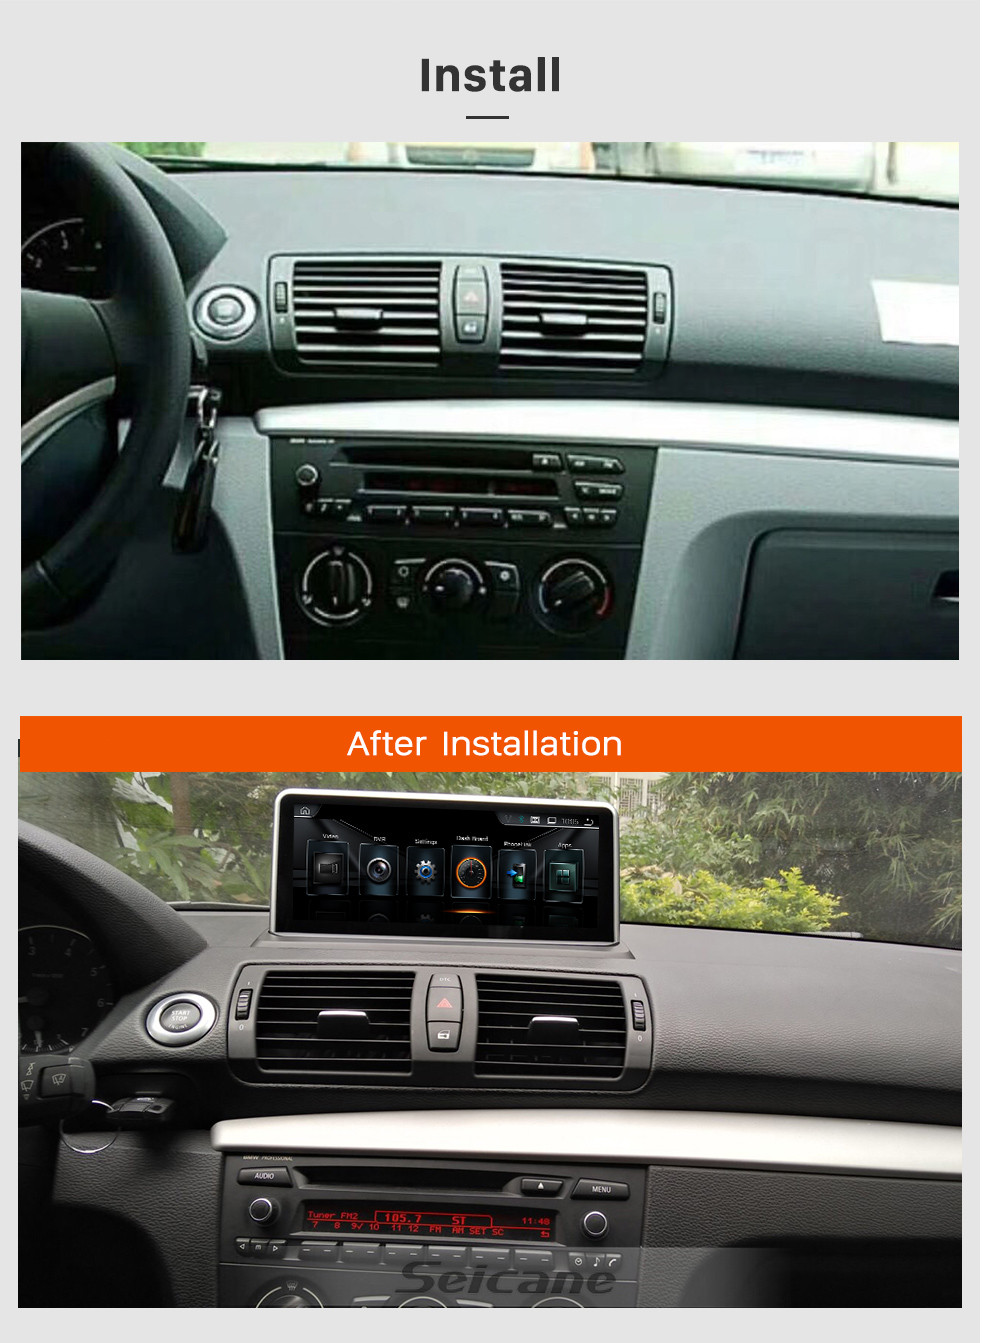 Seicane OEM 10.25 Inch Android 8.1 HD Touchscreen 2006-2012 BMW E87 CCC Radio Head Unit GPS Navigation Bluetooth Support USB WIFI OBD2 Rearview Camera Steering Wheel Control